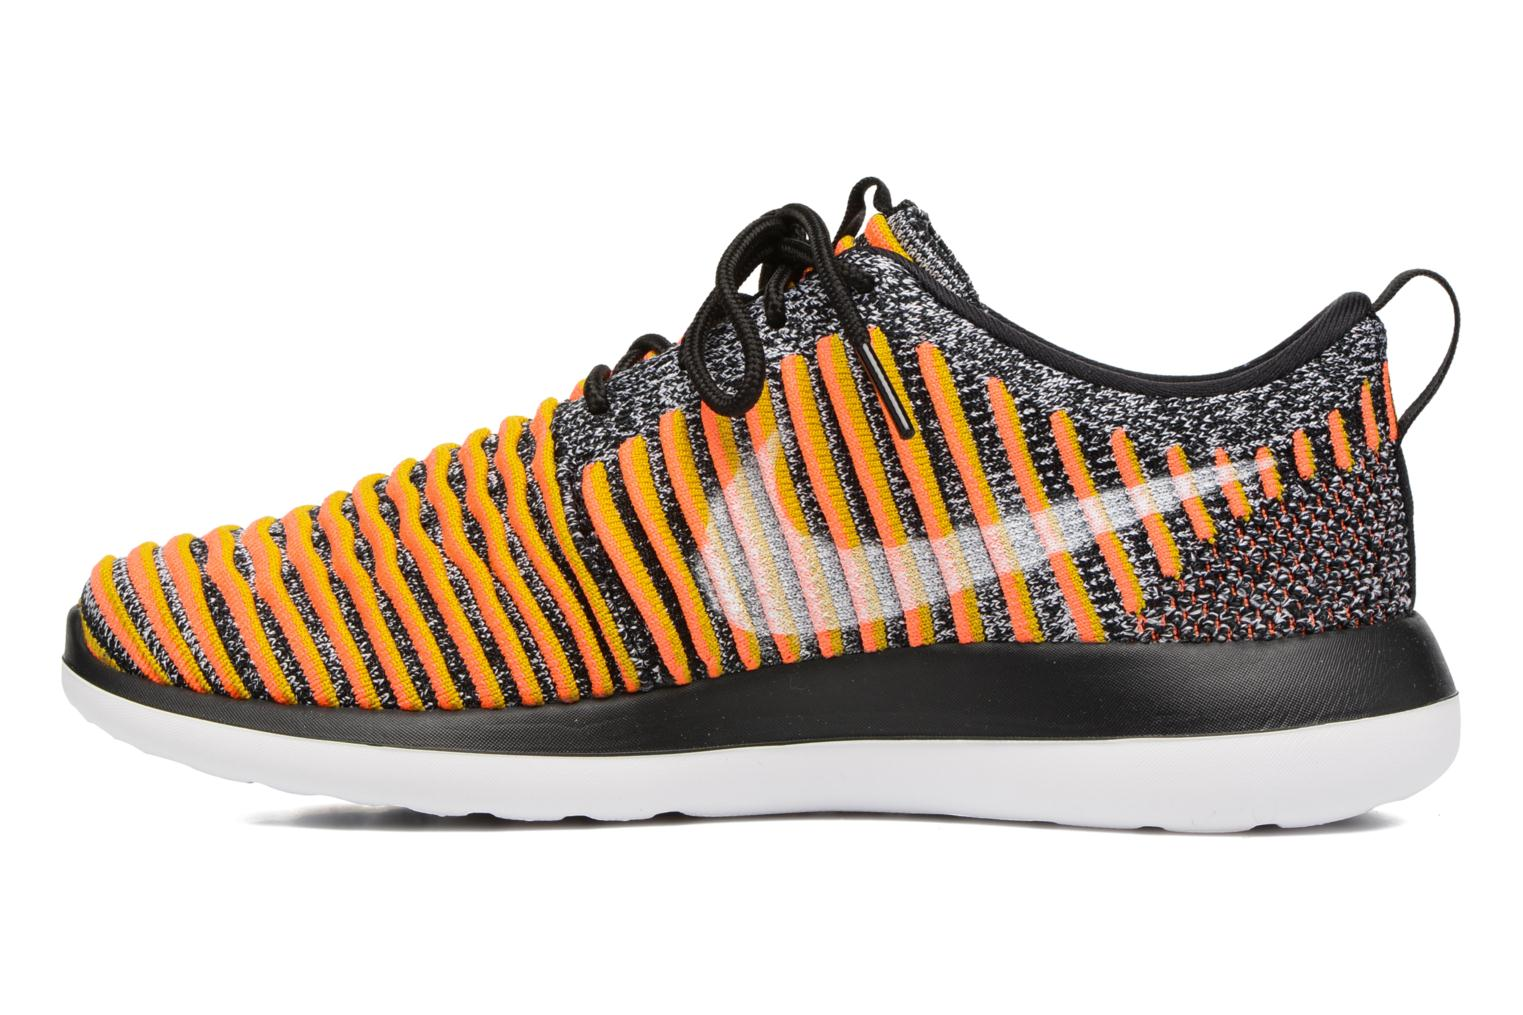 W Nike Roshe Two Flyknit Black/White-Bright Mango-Gold Lead